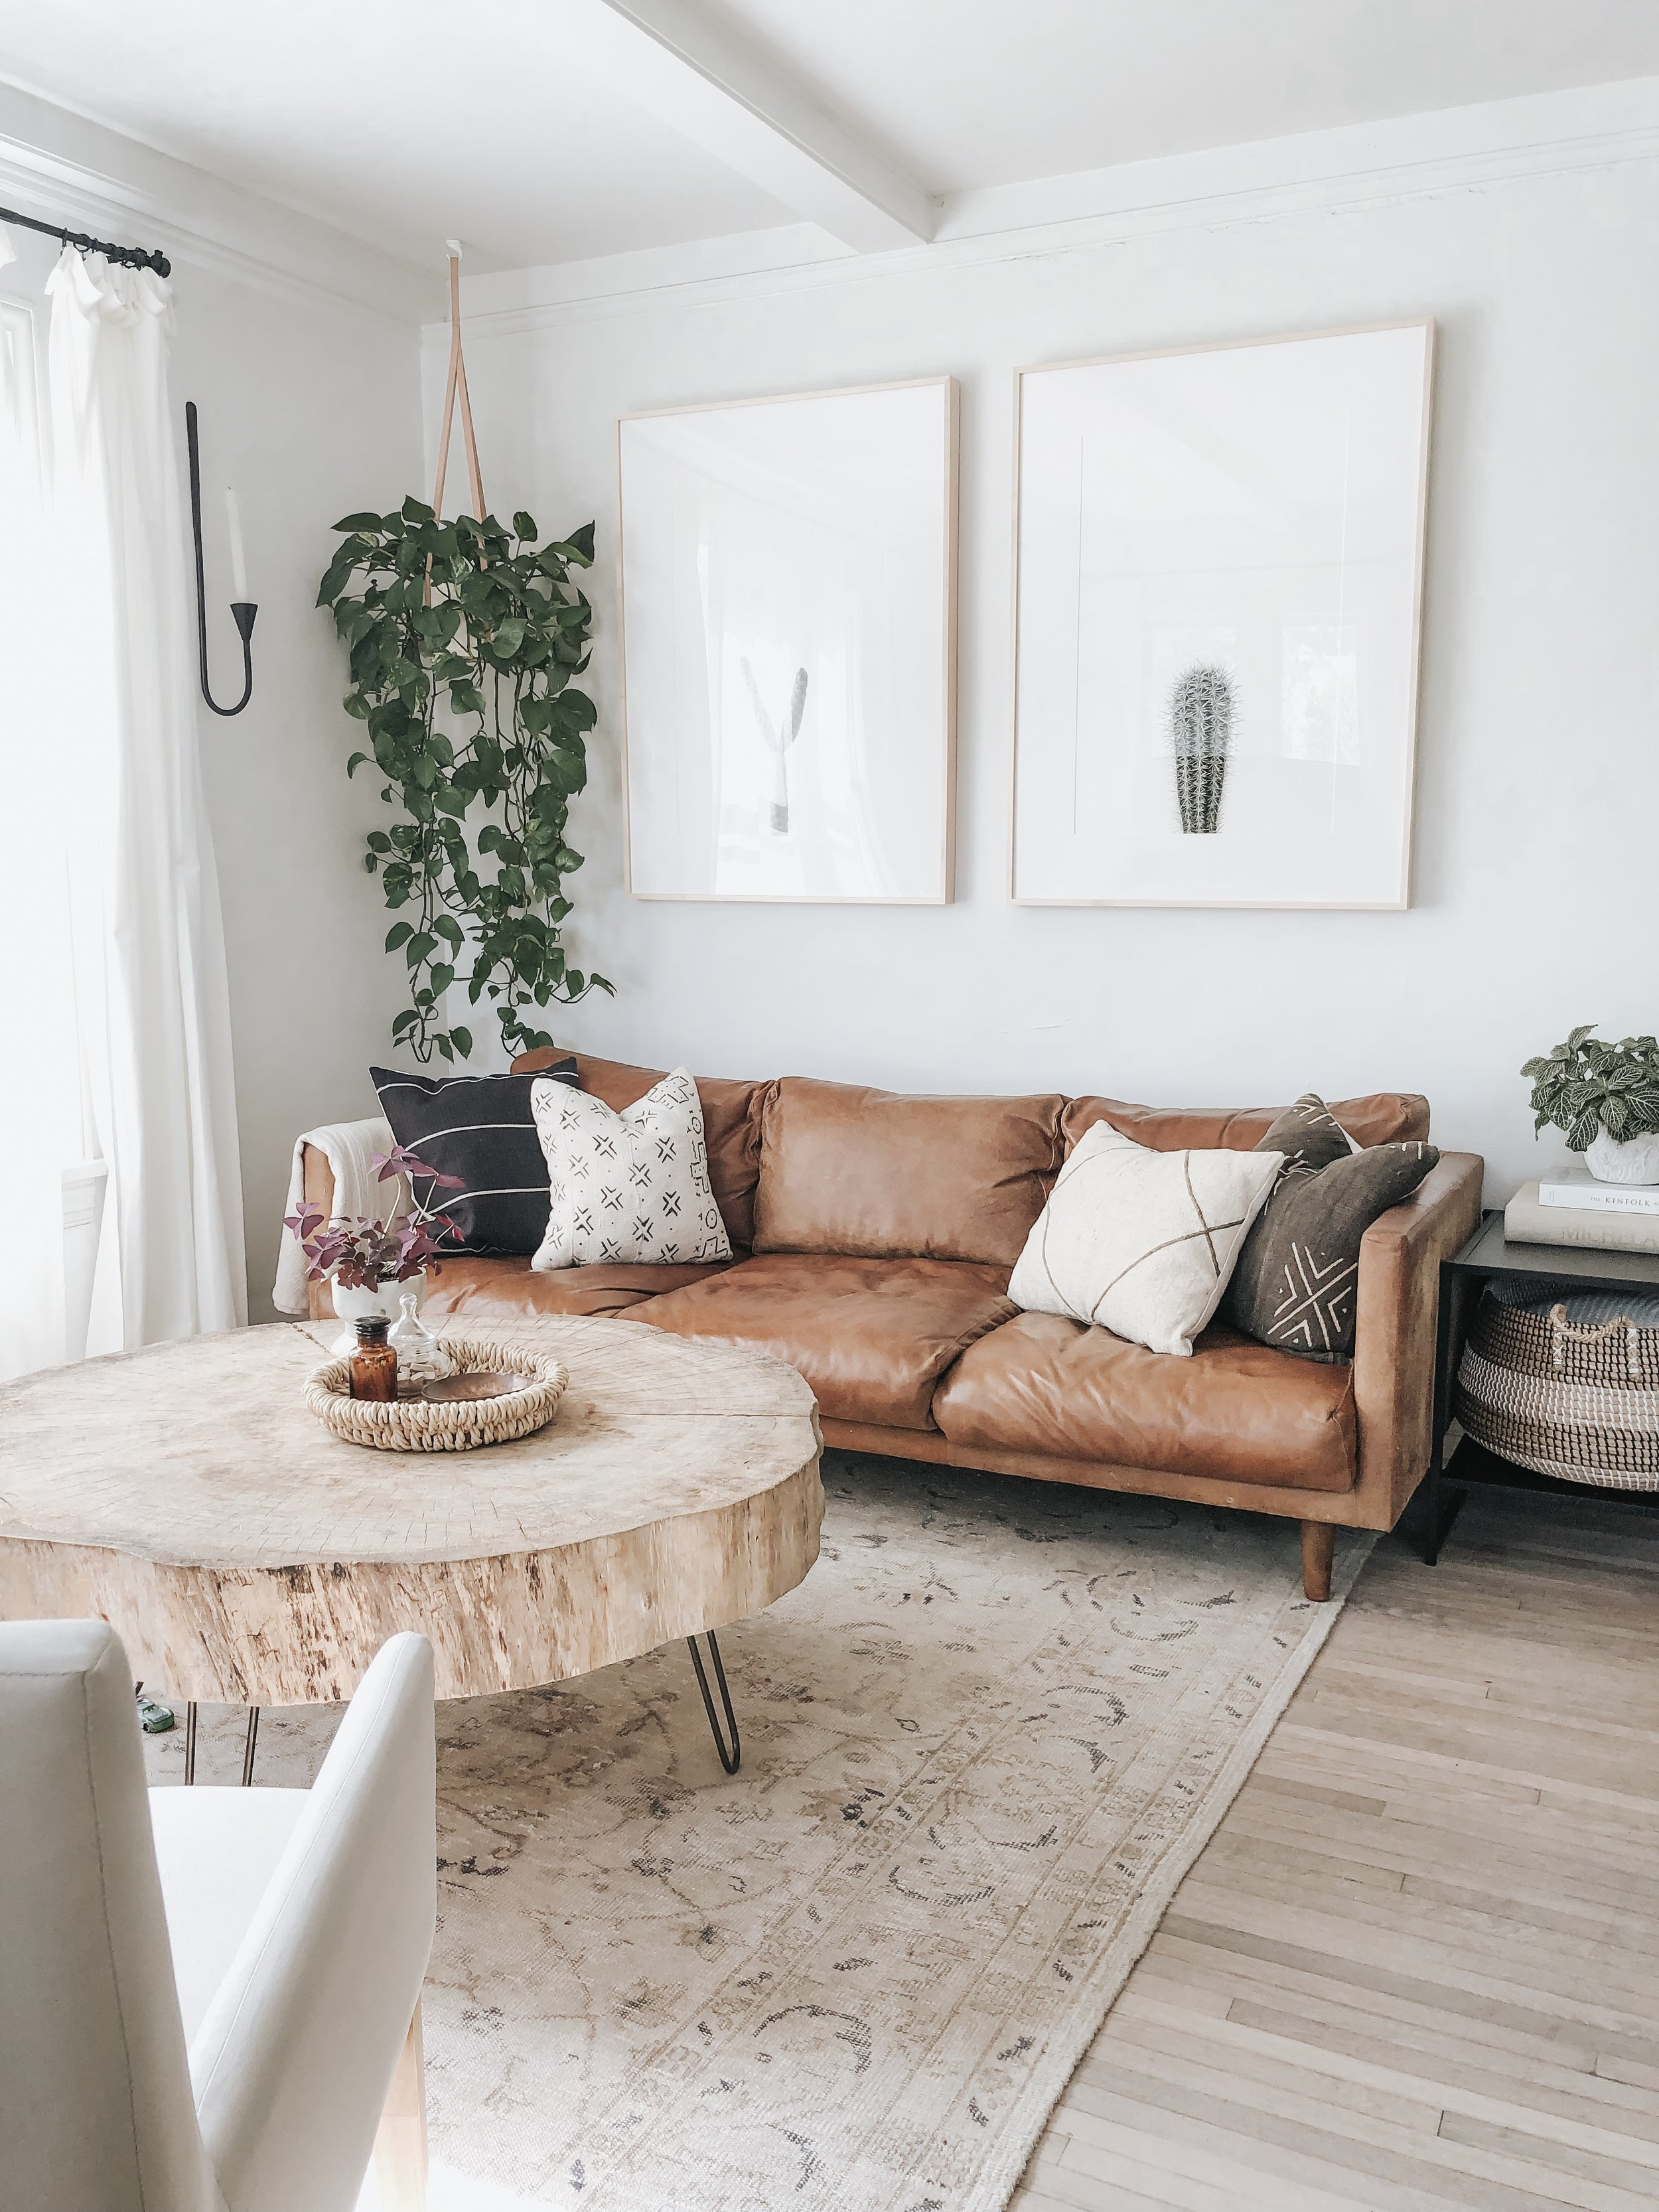 Sources:  Hanging planter  |  Candle wall sconce  | Coffee table - local flea market